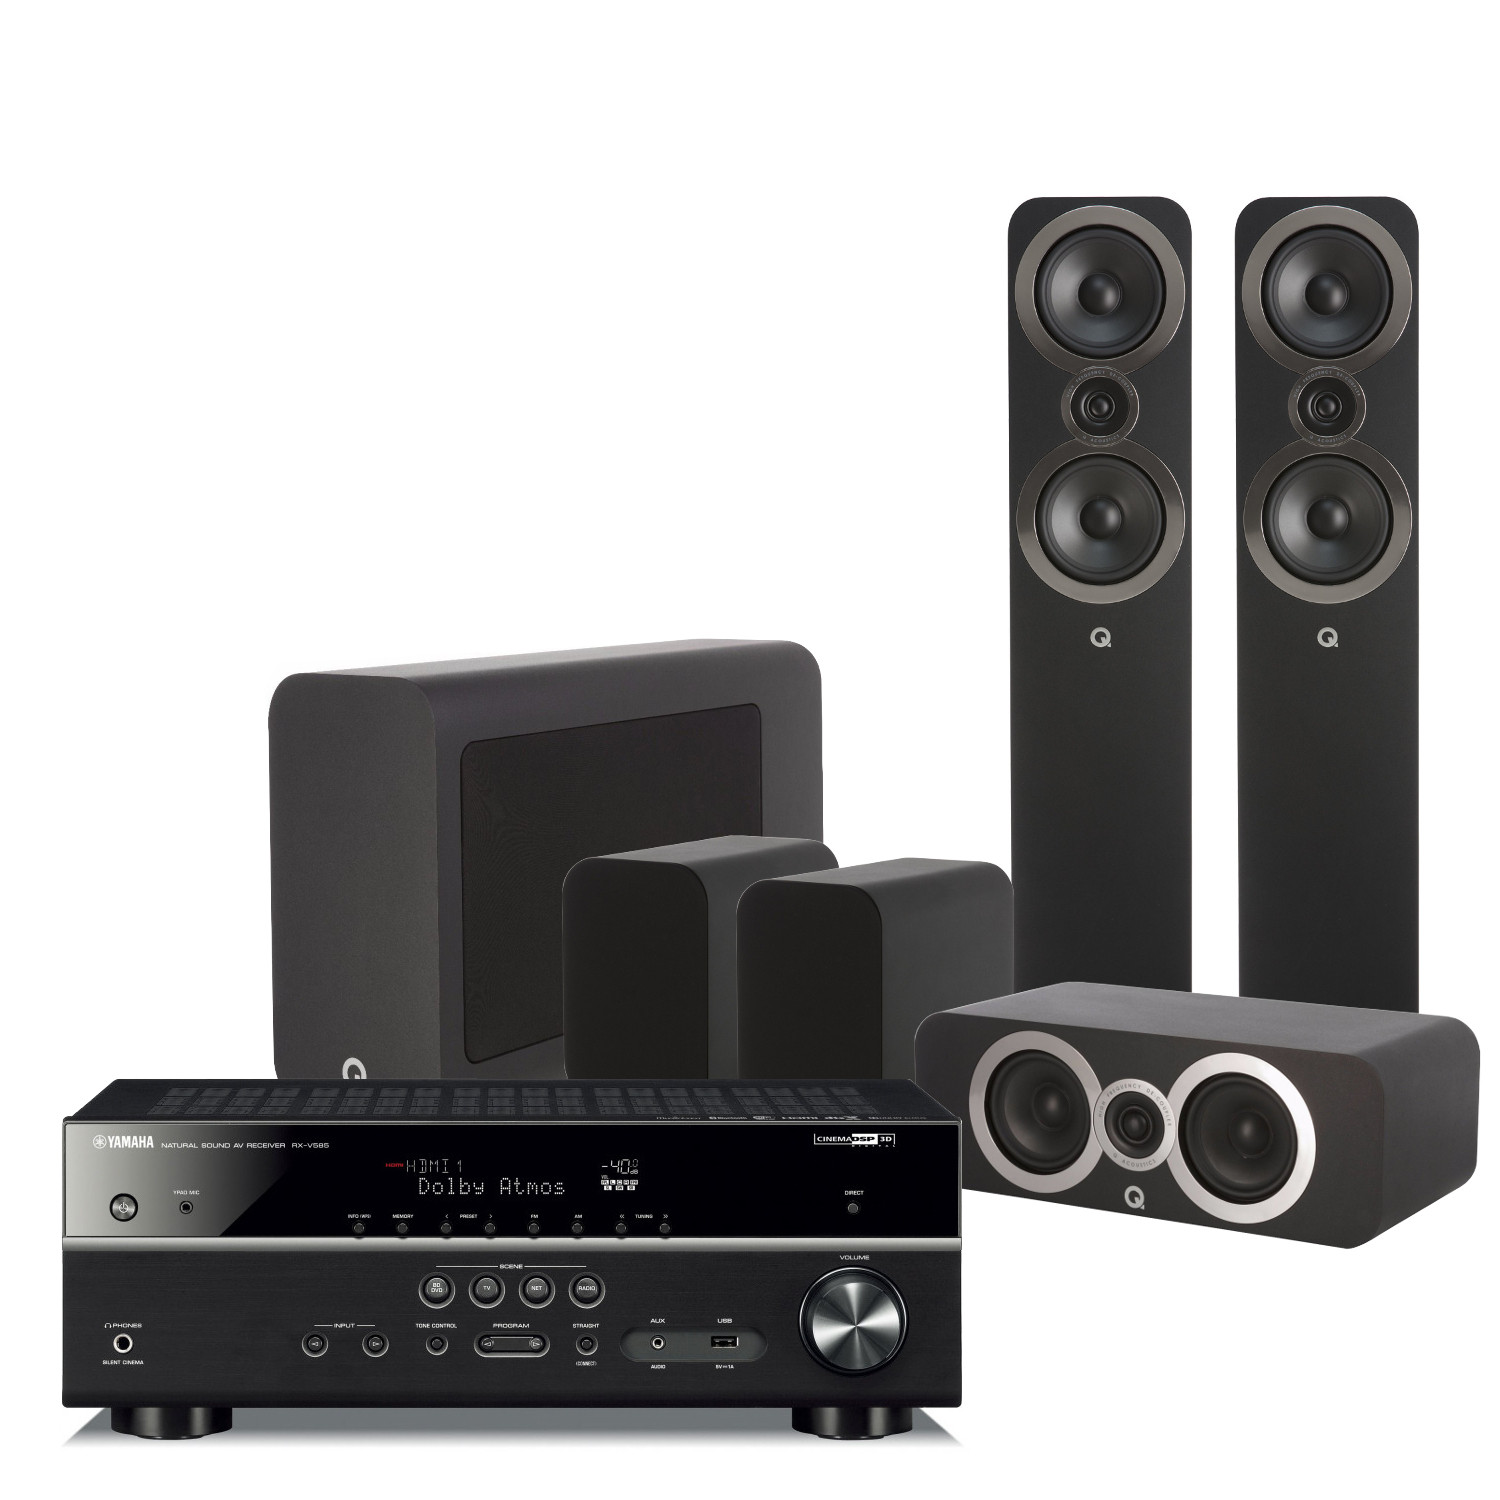 Yamaha RX-V585 7 2 Channel AV Receiver with Q Acoustics